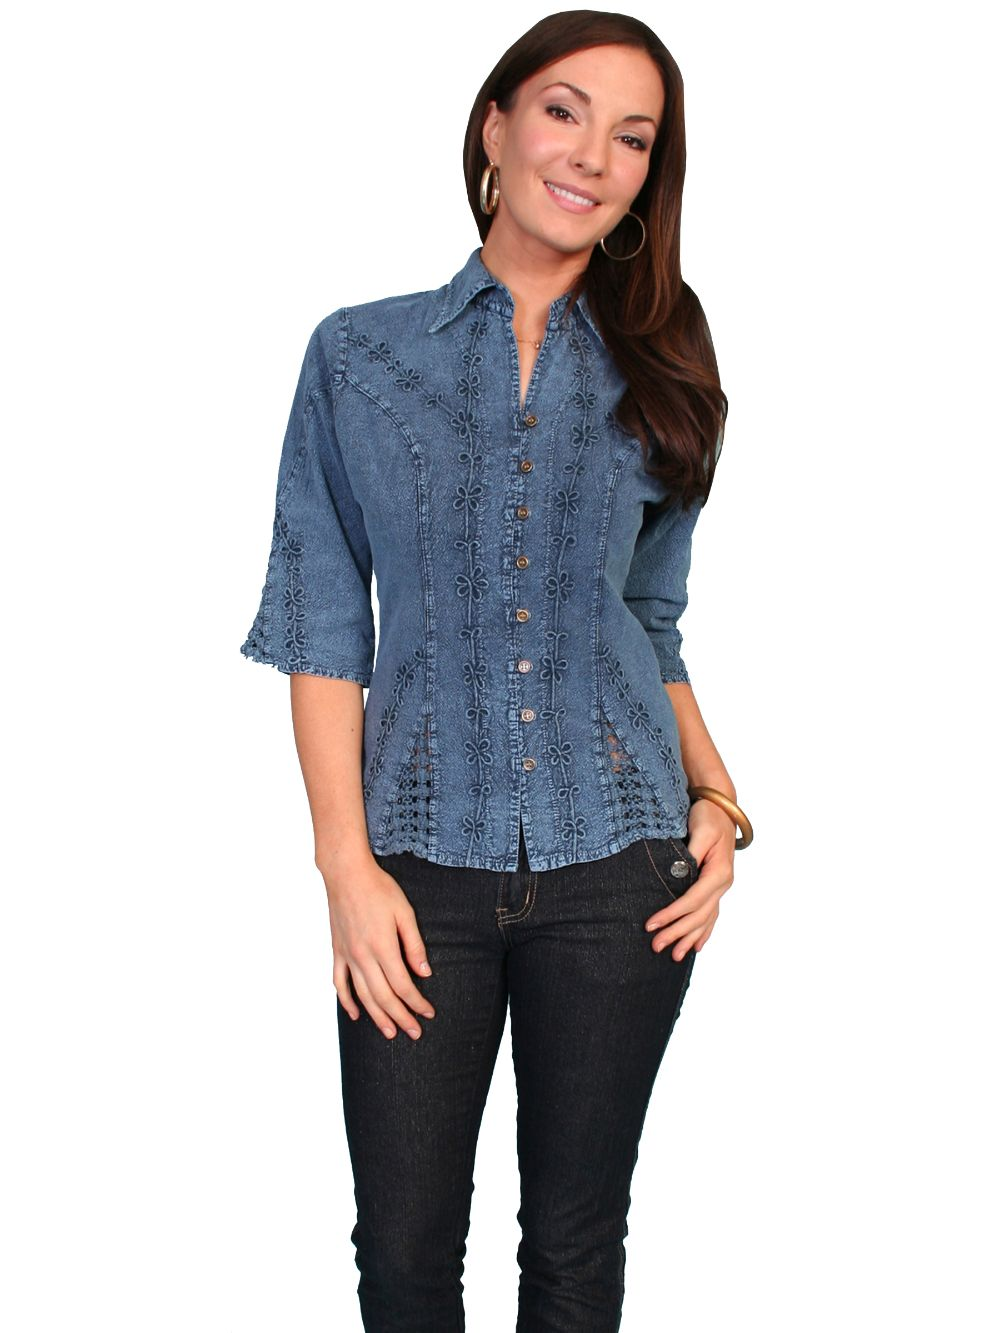 3/4 Sleeve Peruvian Cotton Blouse - Psl-064 - Dark Blue. (ships in 1-2 days). #F0_PSL-064_DBL